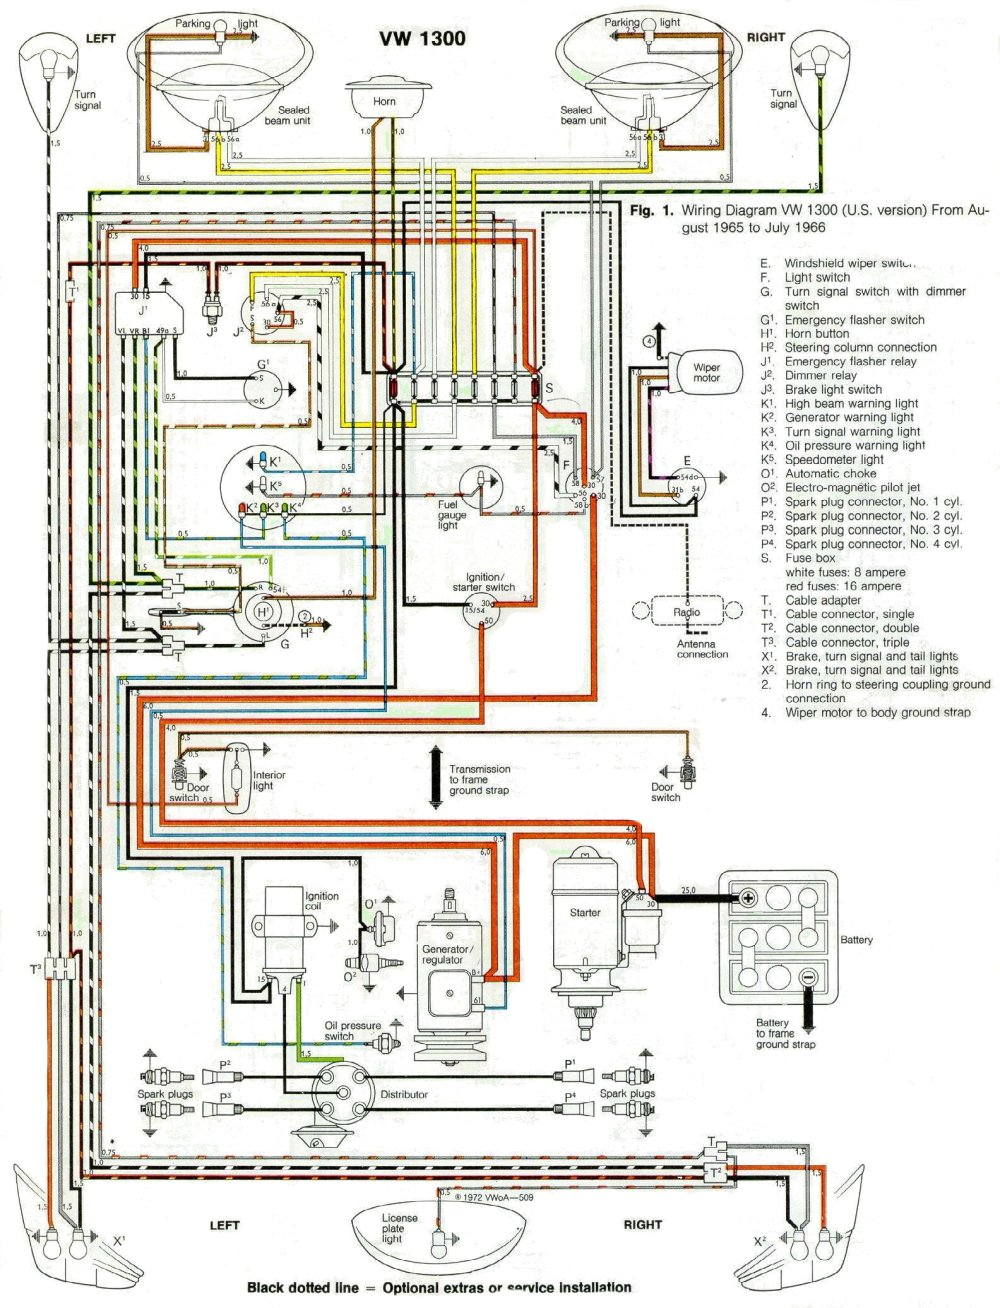 medium resolution of 2000 beetle wiring schematic best wiring diagram 2000 vw beetle ac wiring diagram vw beetle wiring diagram 2000